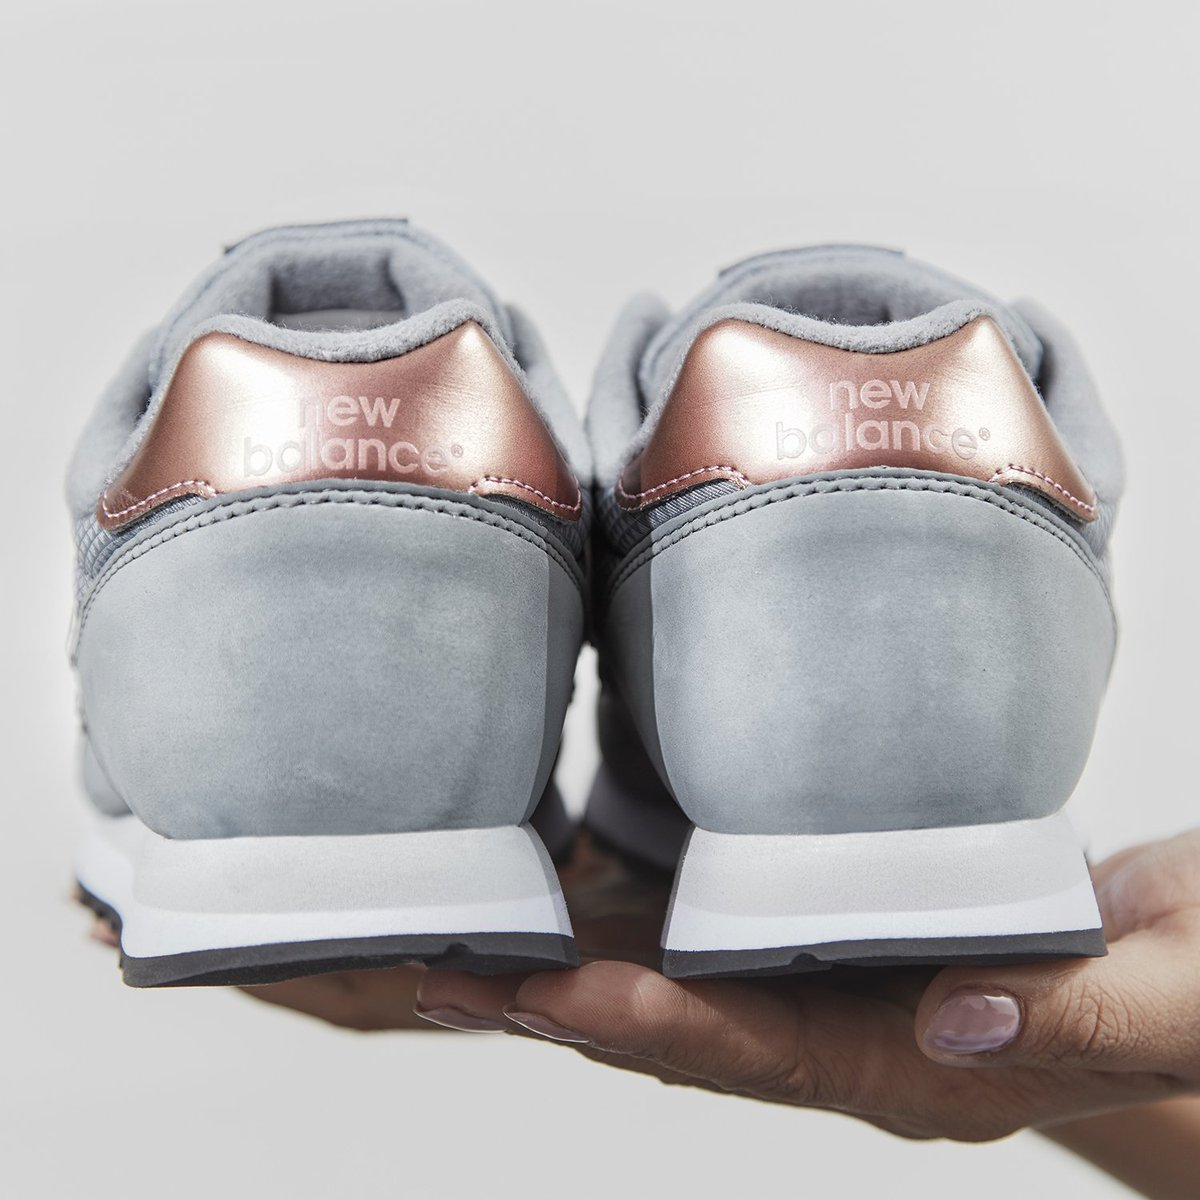 gray and rose gold new balance